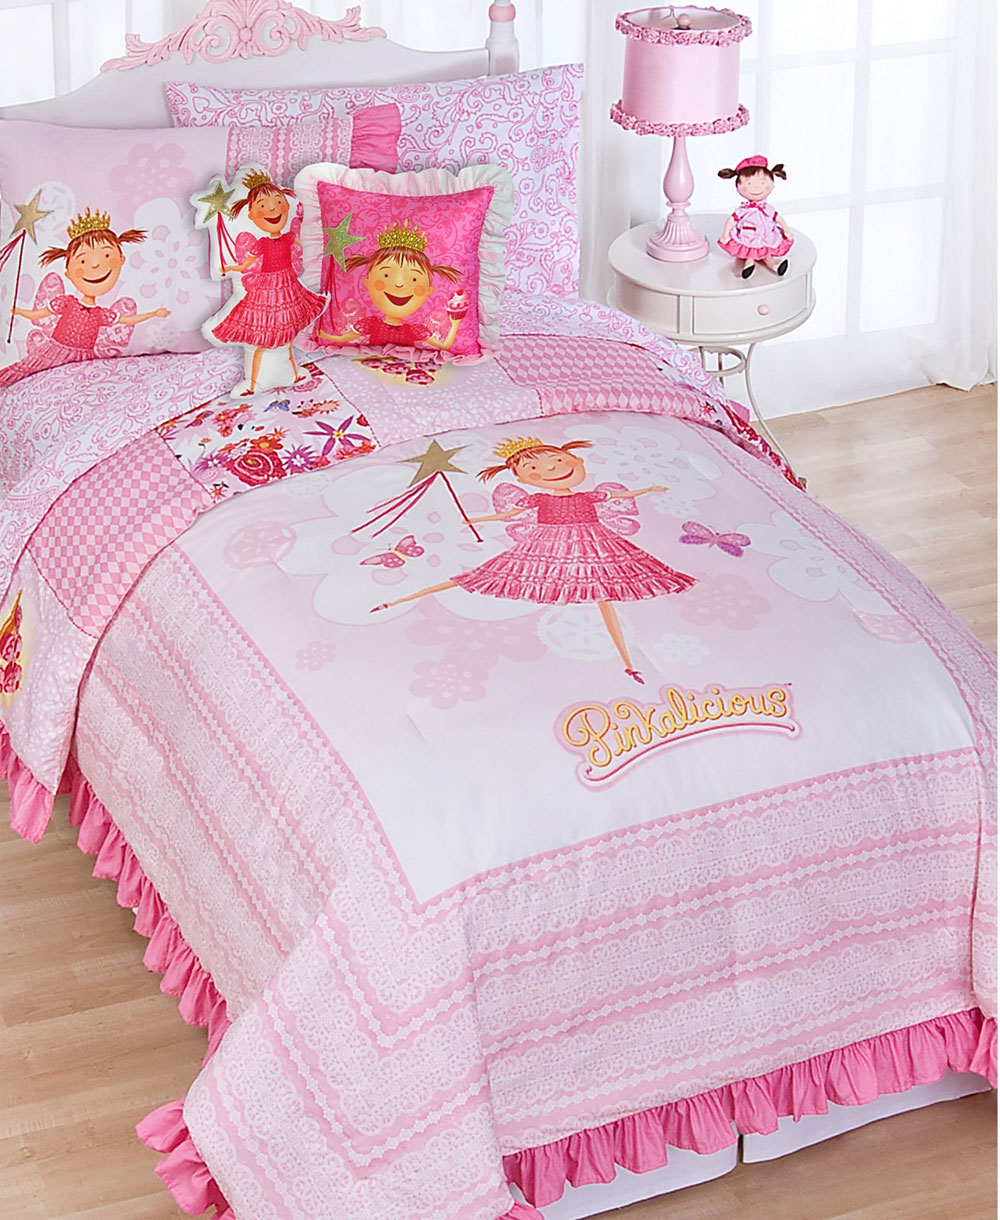 7pc Pink Princess Bedding Set